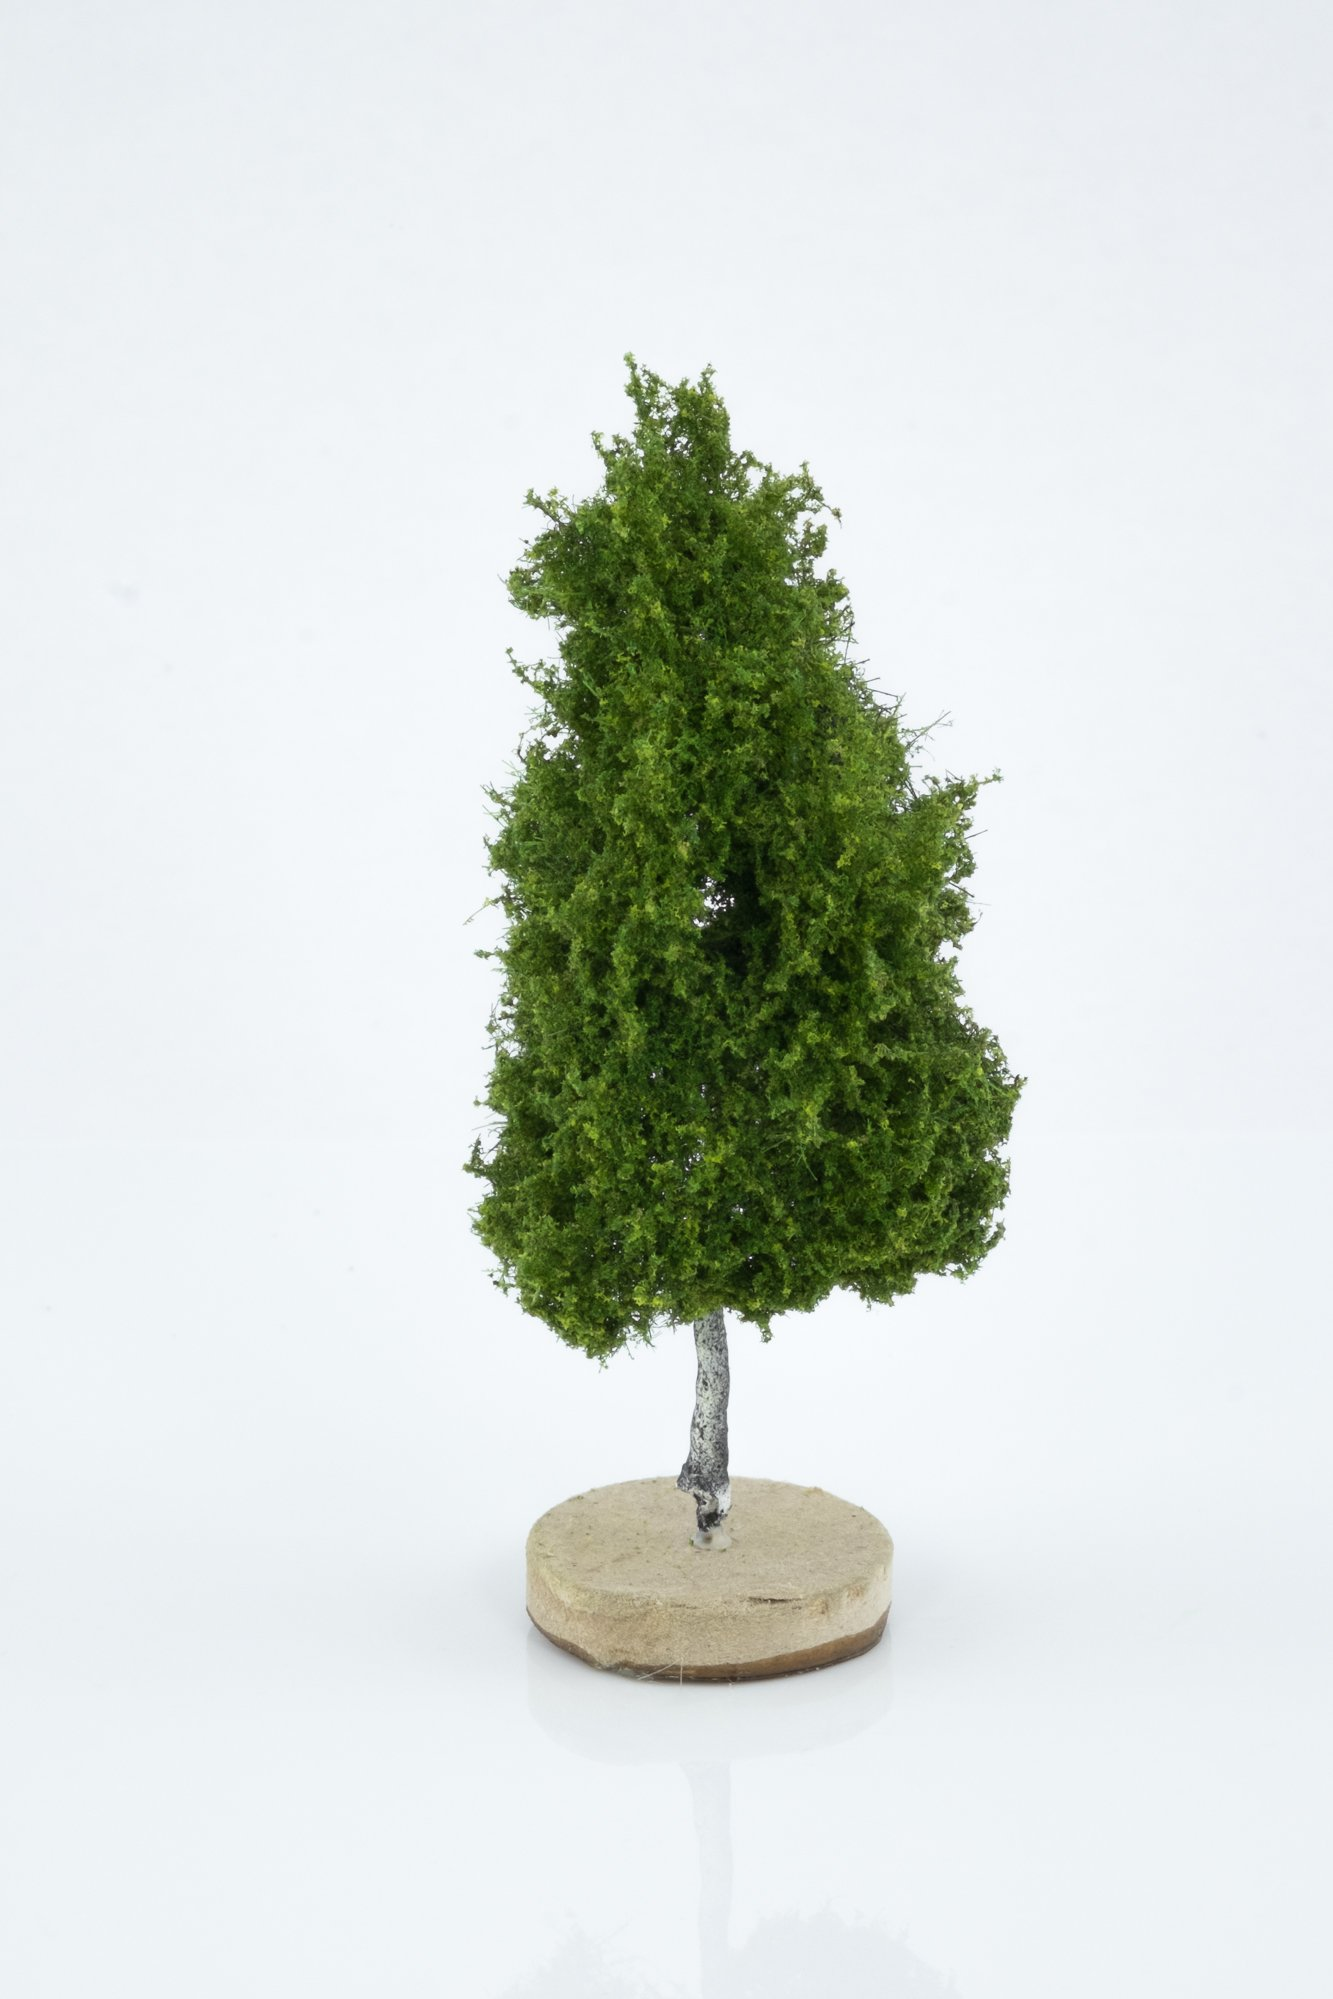 Hand-made, green, birch tree model. Size between 8 and 12 cm. Made from high quality model supplies by Primo Models.